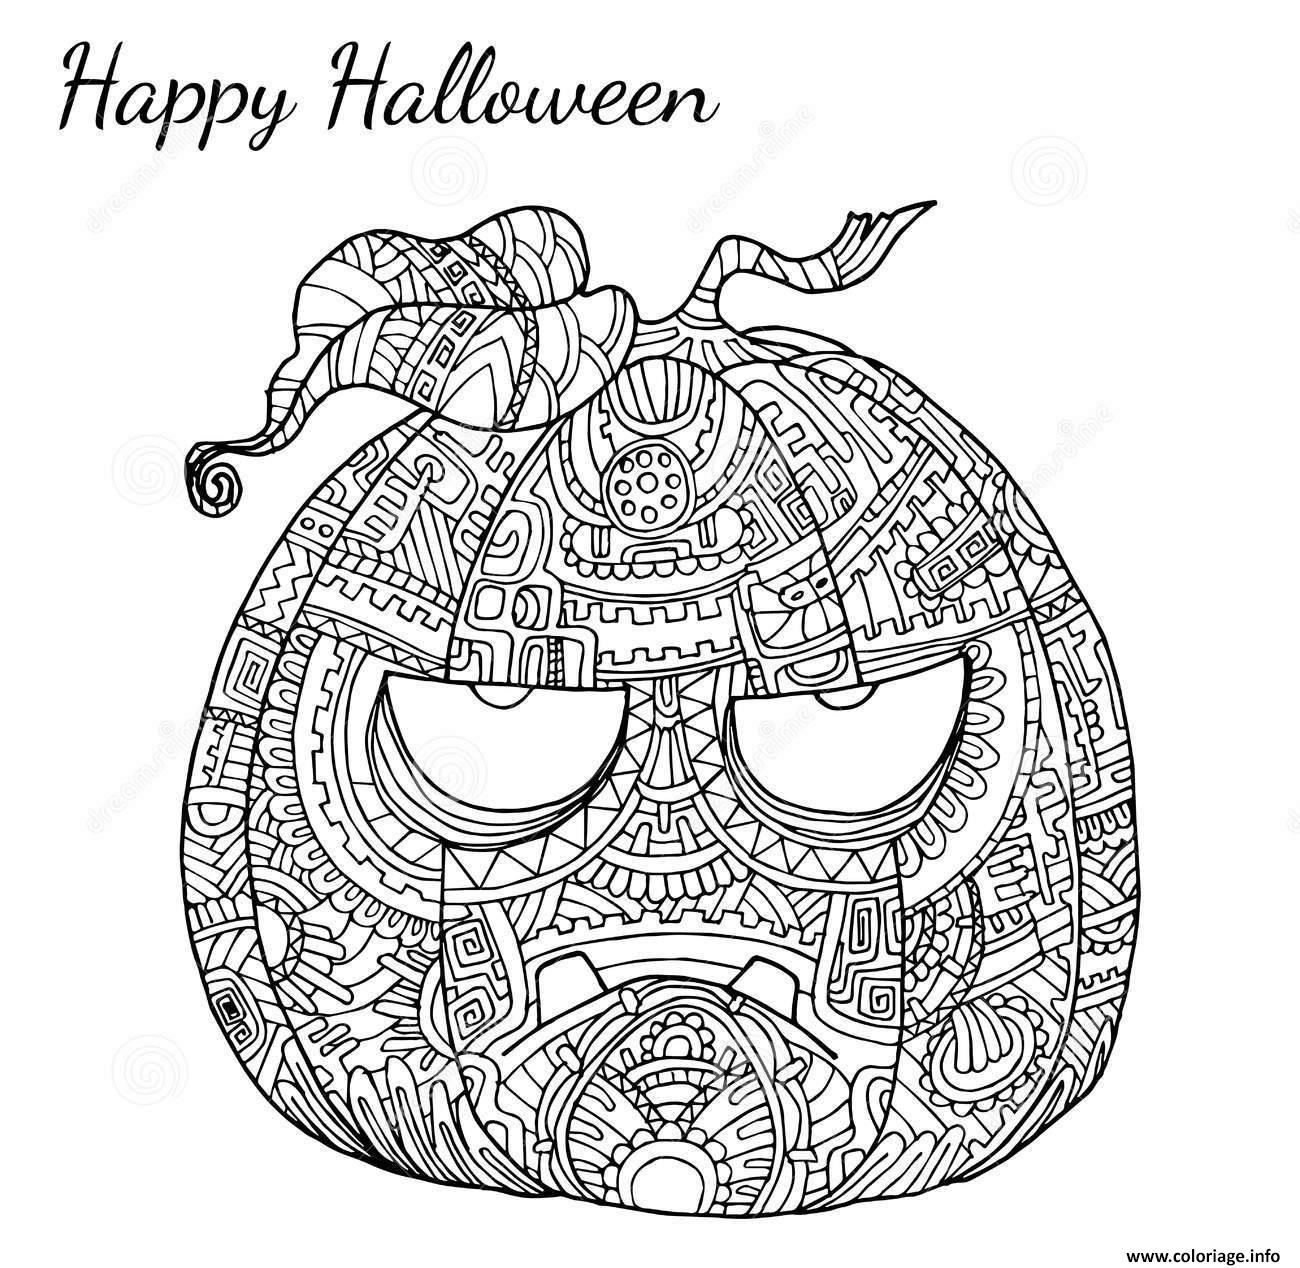 Coloriage halloween adulte zen citrouille dessin - Halloween adulte ...